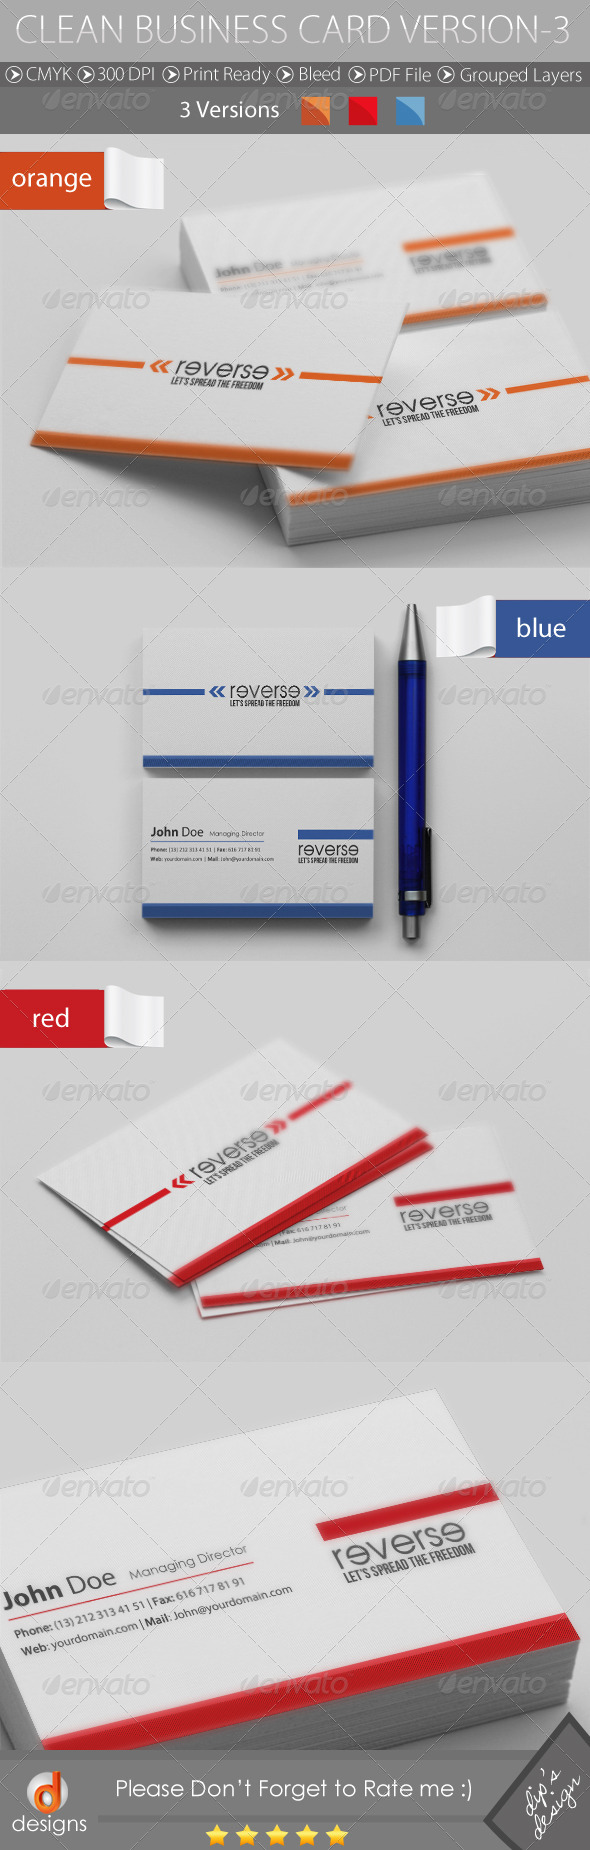 CLEAN BUSINESS CARD VERSION-3 - Business Cards Print Templates